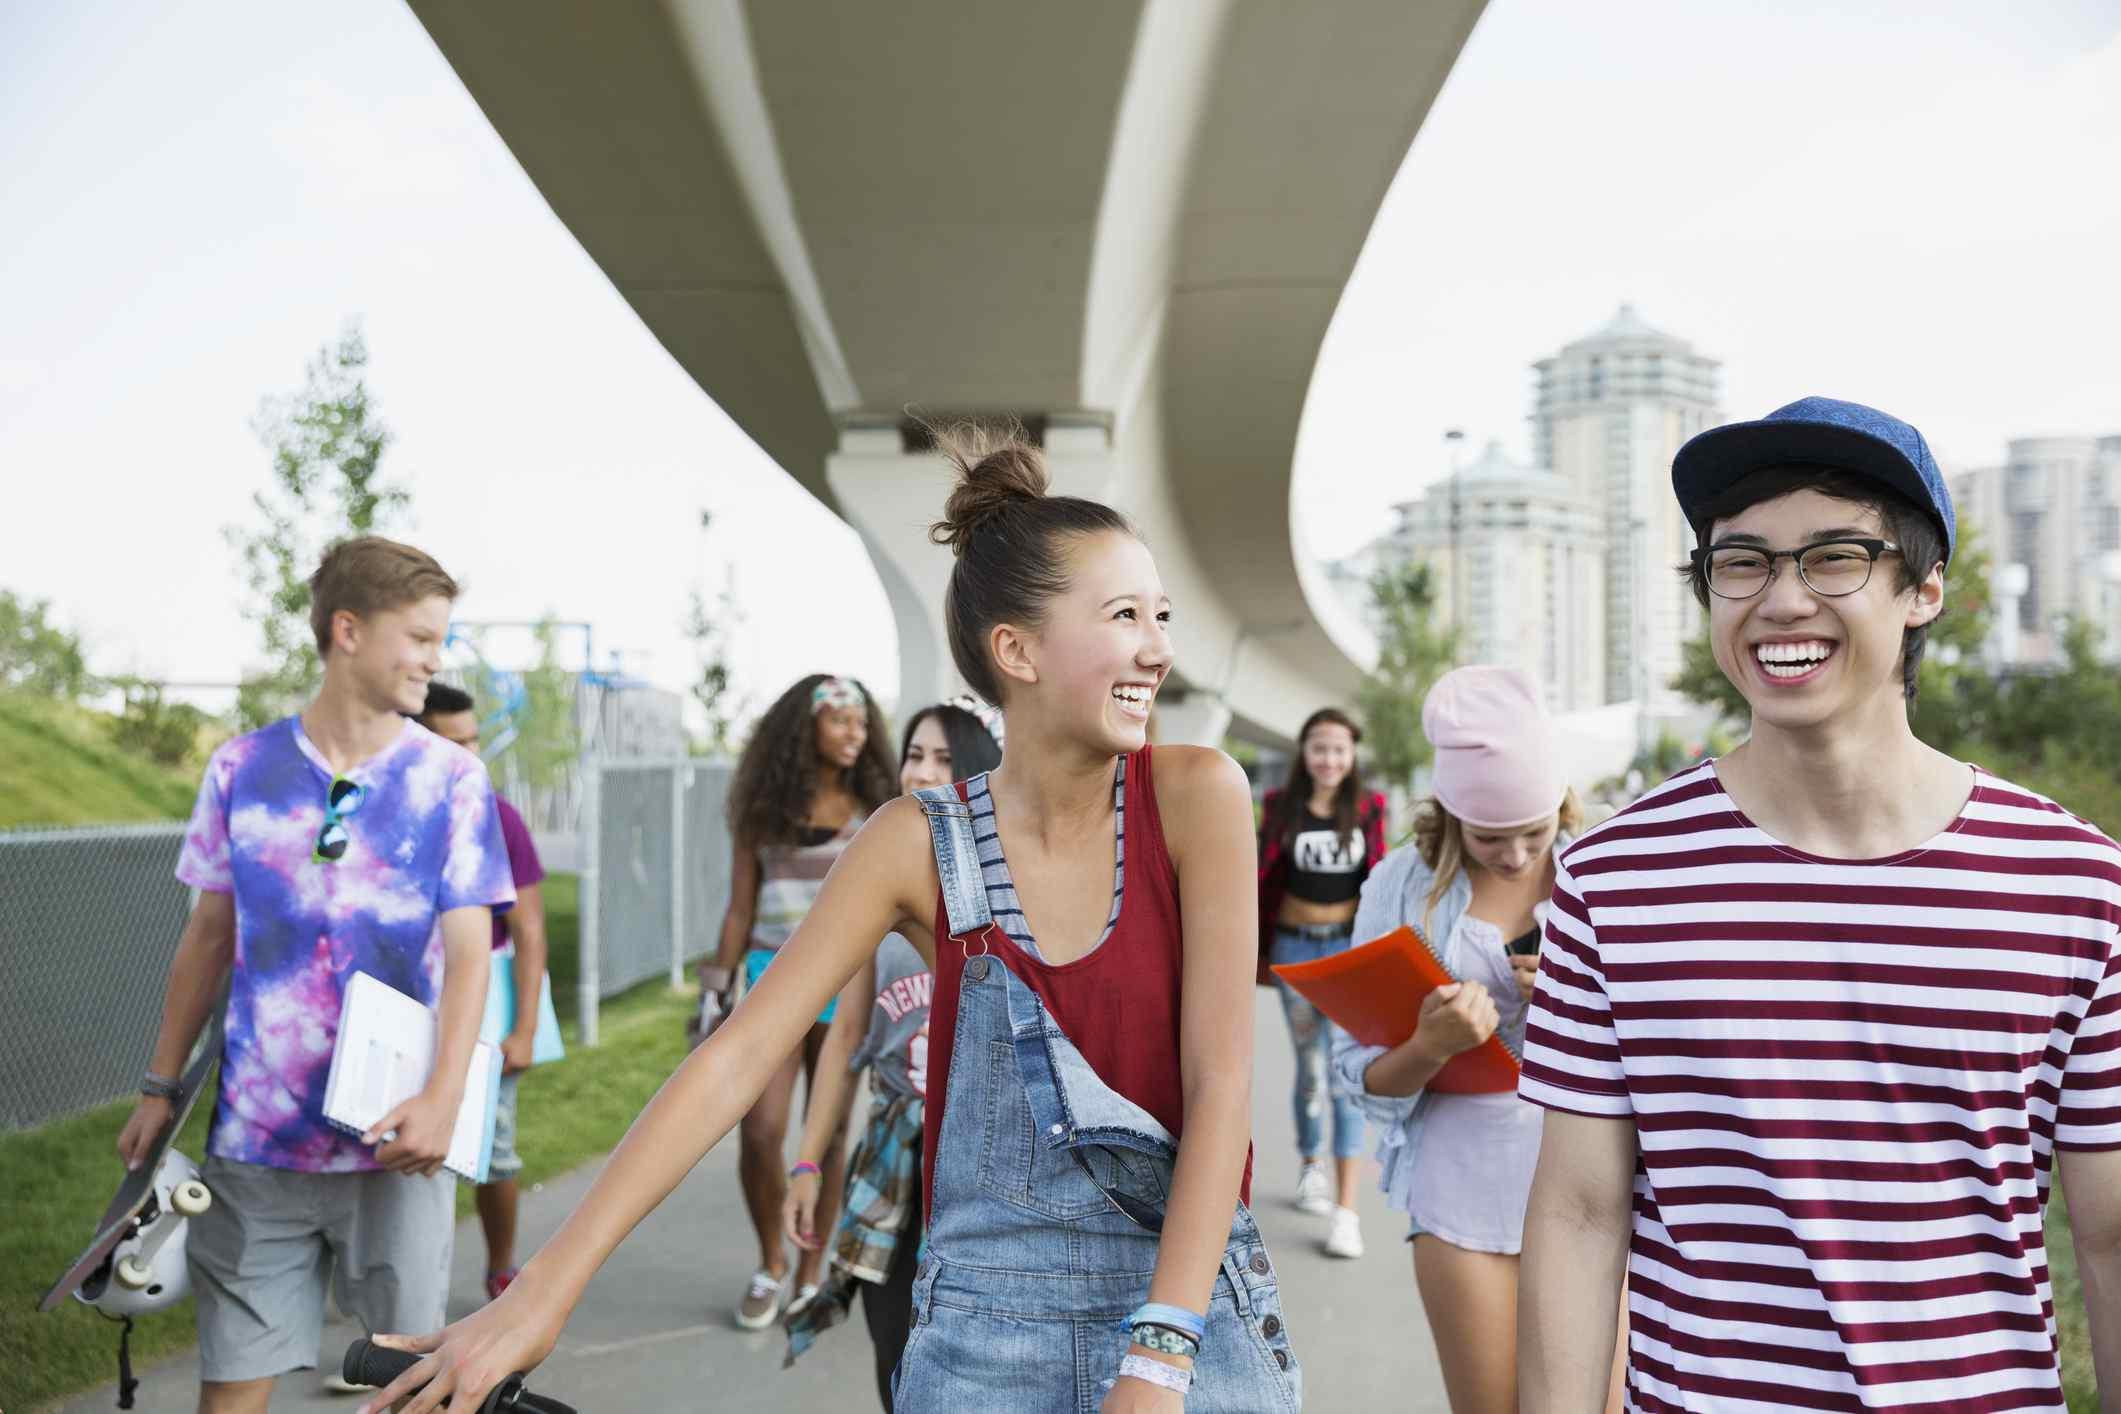 Teen guys and girls walking on sidewalk and laughing